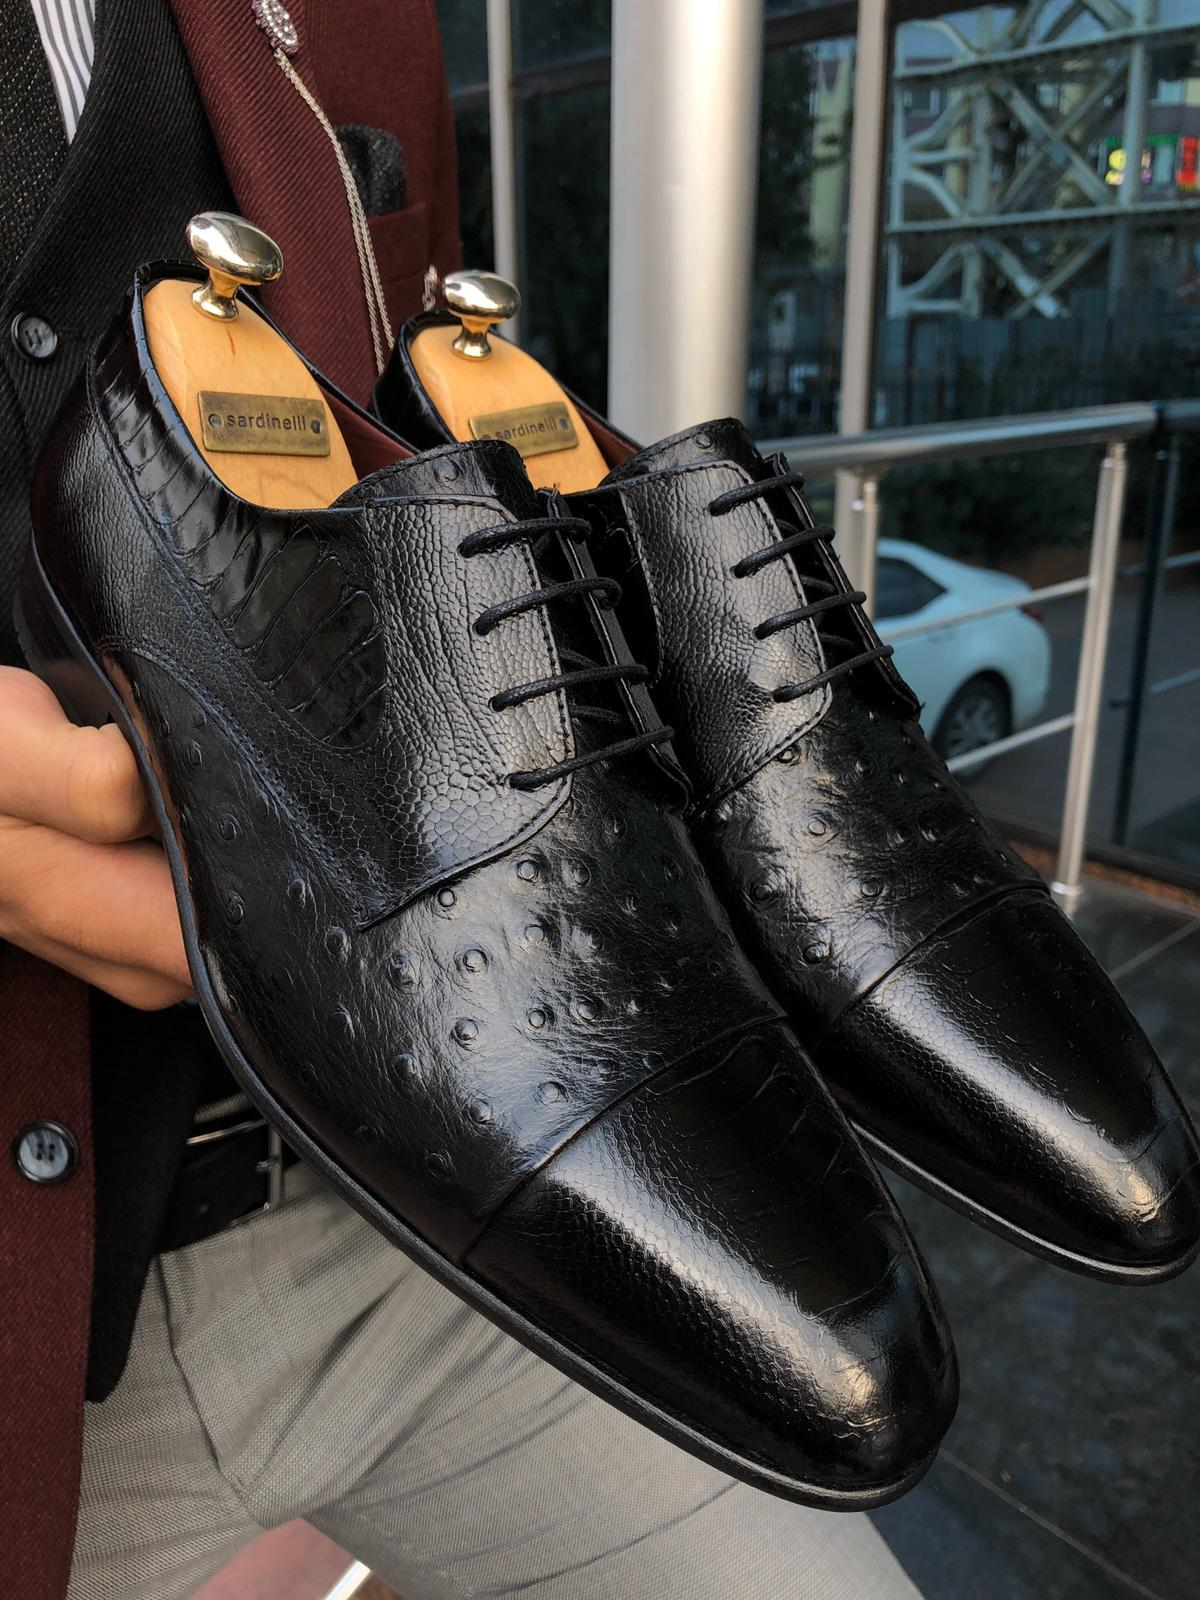 Sardinelli Classic Leather Shoes Black